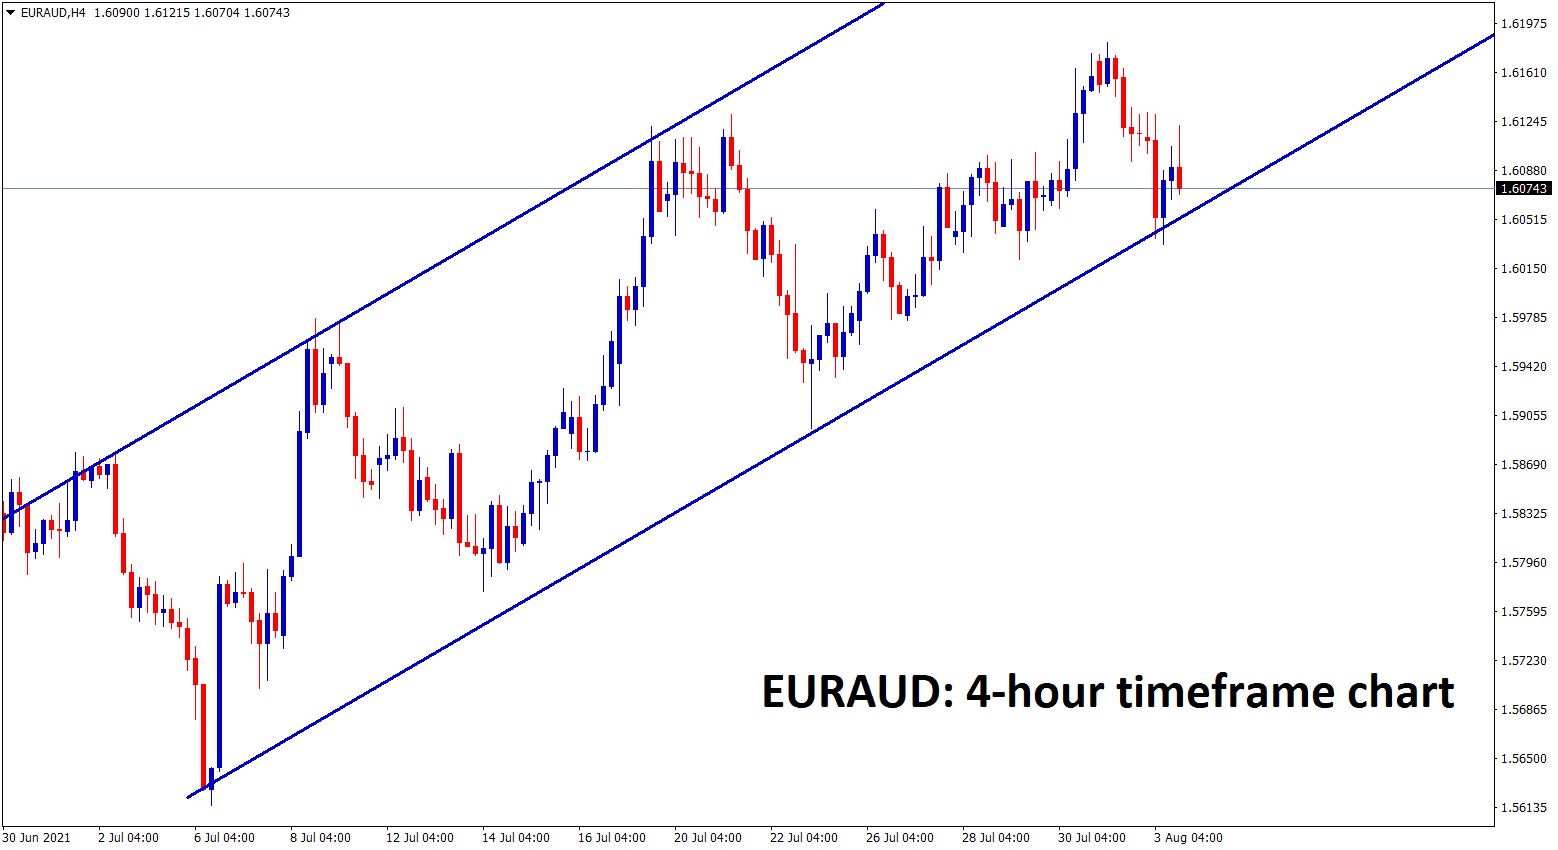 EURAUD is moving in an Ascending channel in 4 hour timeframe